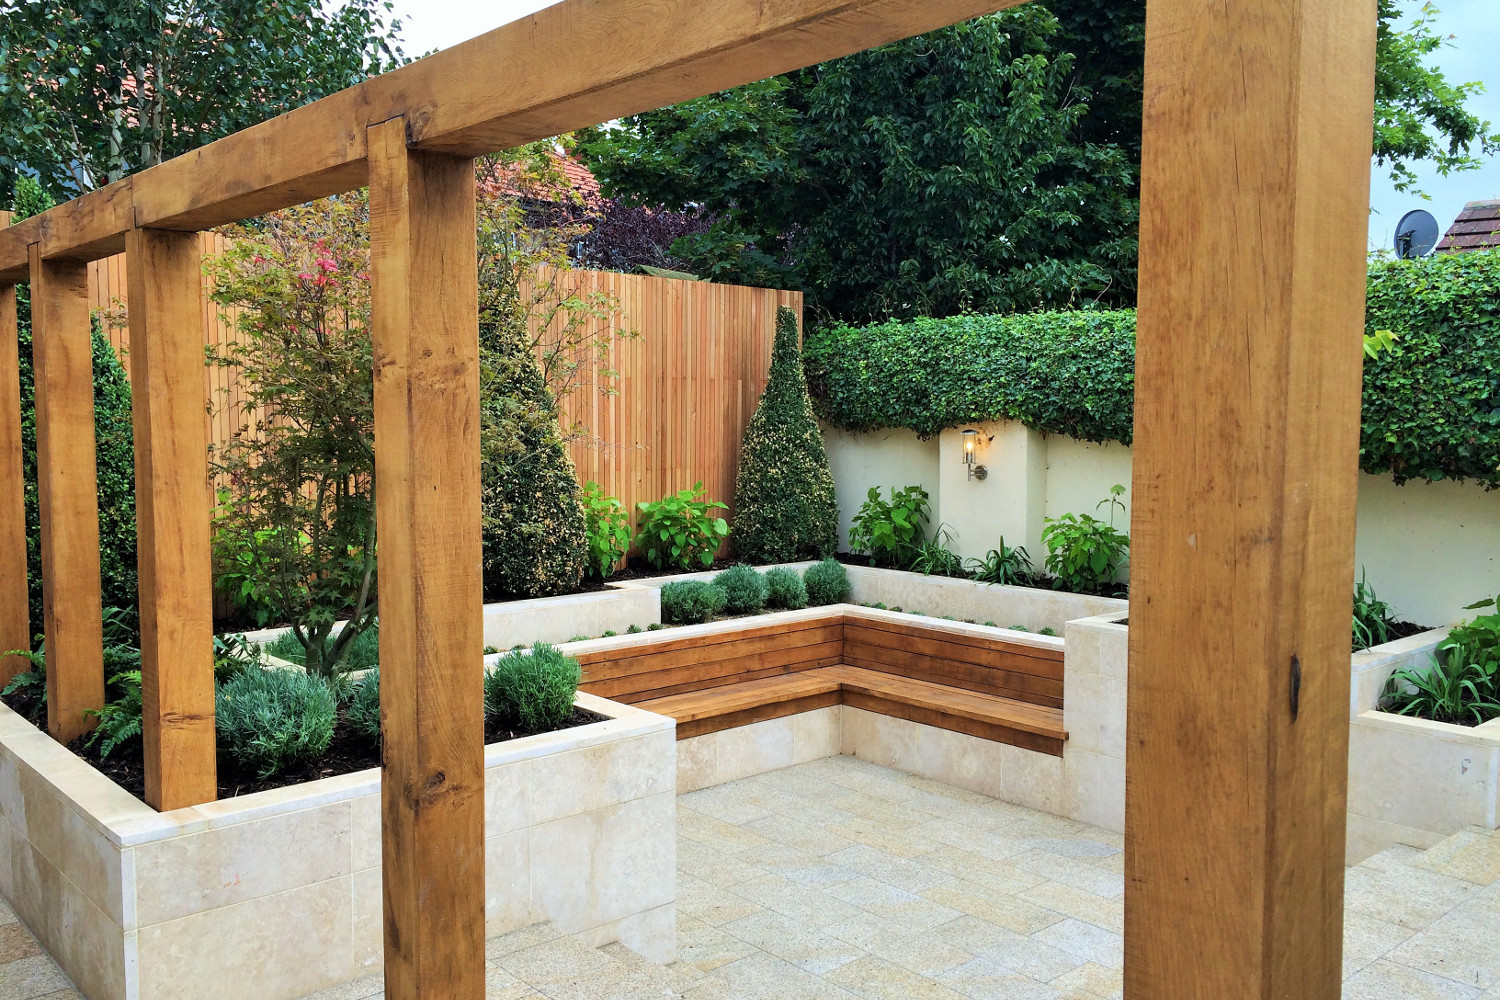 Stylish Sanctuary Garden In Glasnevin Dublin Tim Austen